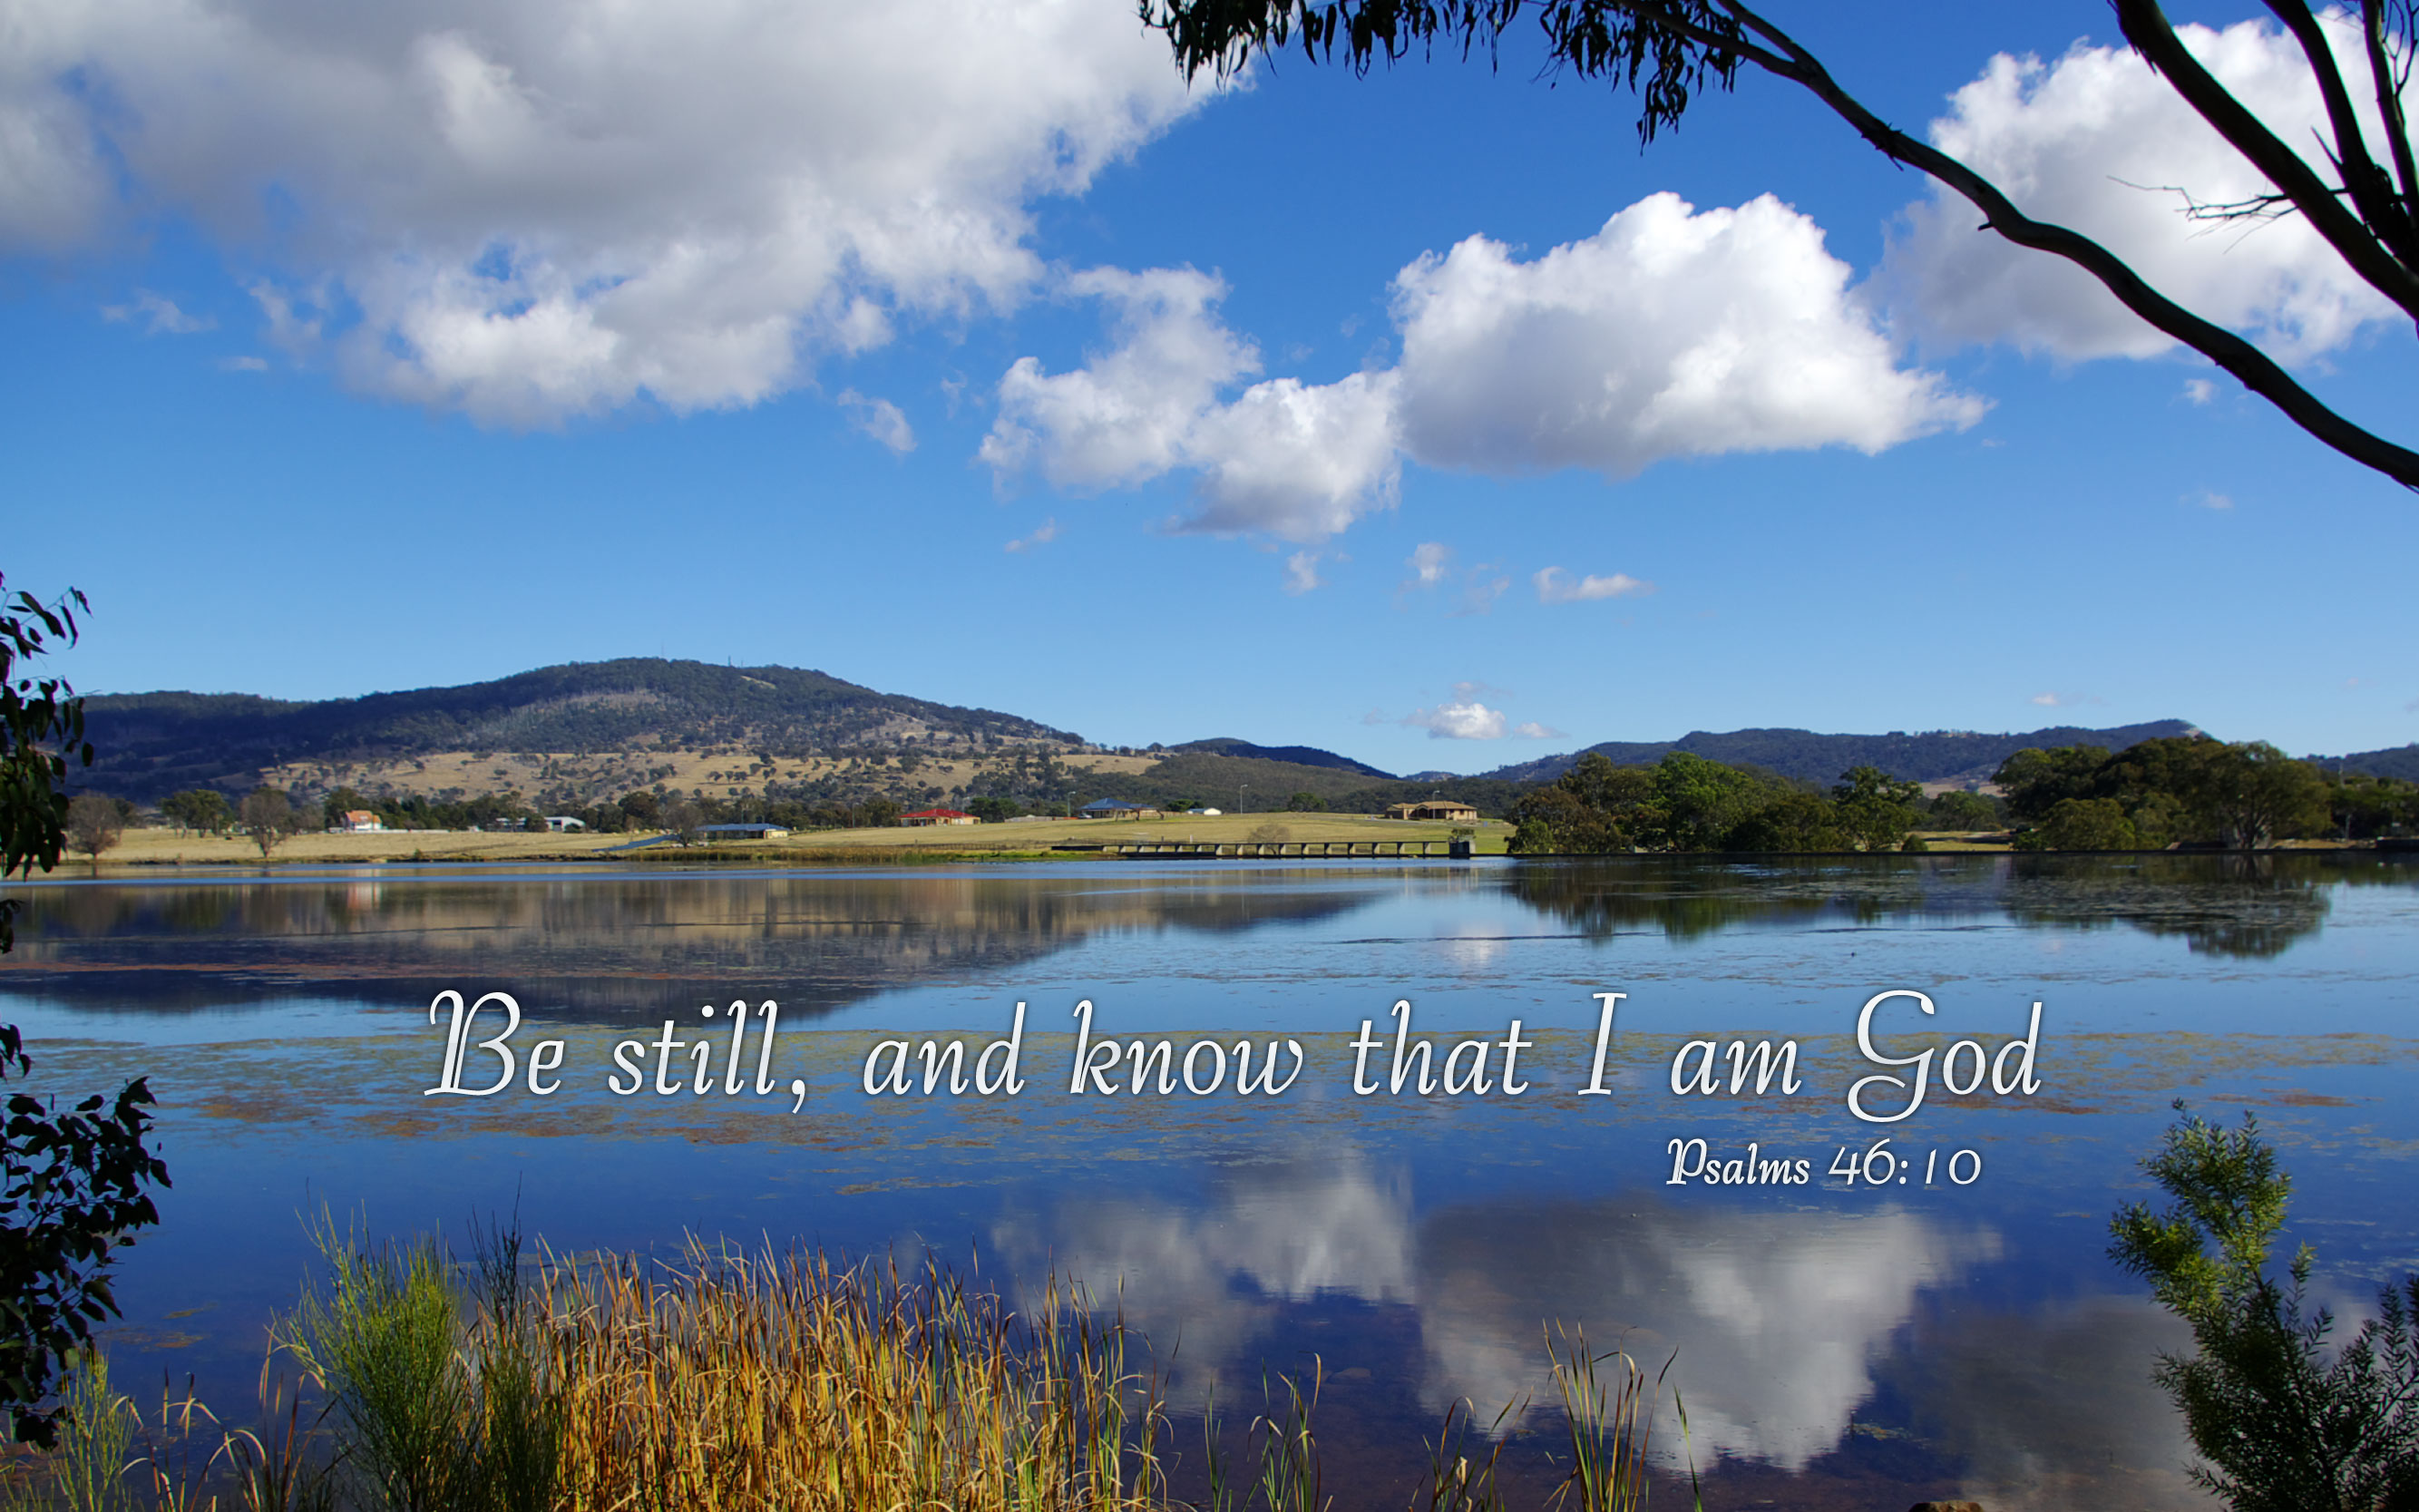 Psalms 4610   Nature Bible Desktop Background Wallpaper 2667x1667